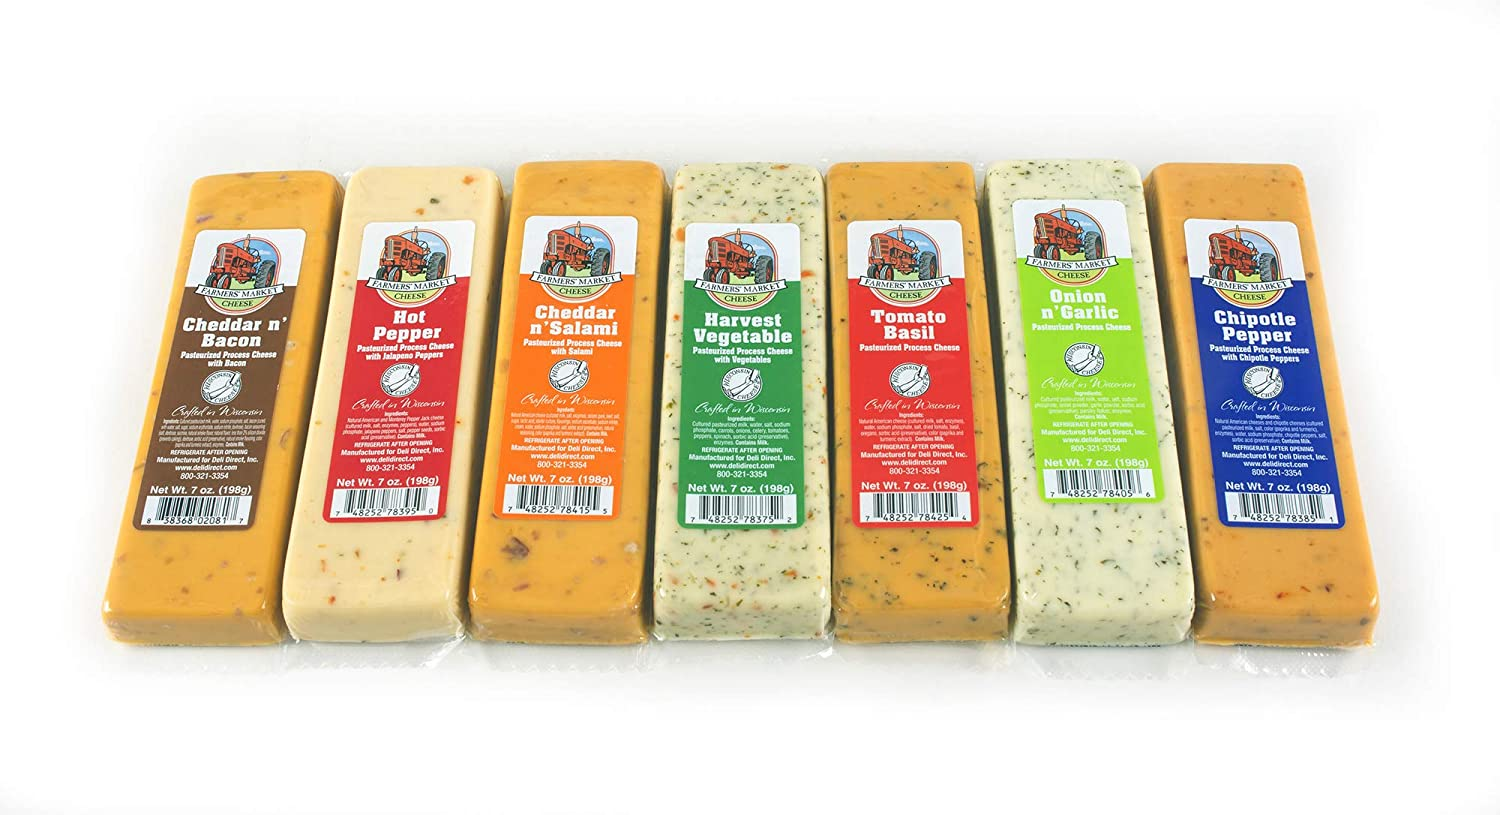 Farmers Market Wisconsin Specialty Cheese Blocks 7oz each (7 blocks)